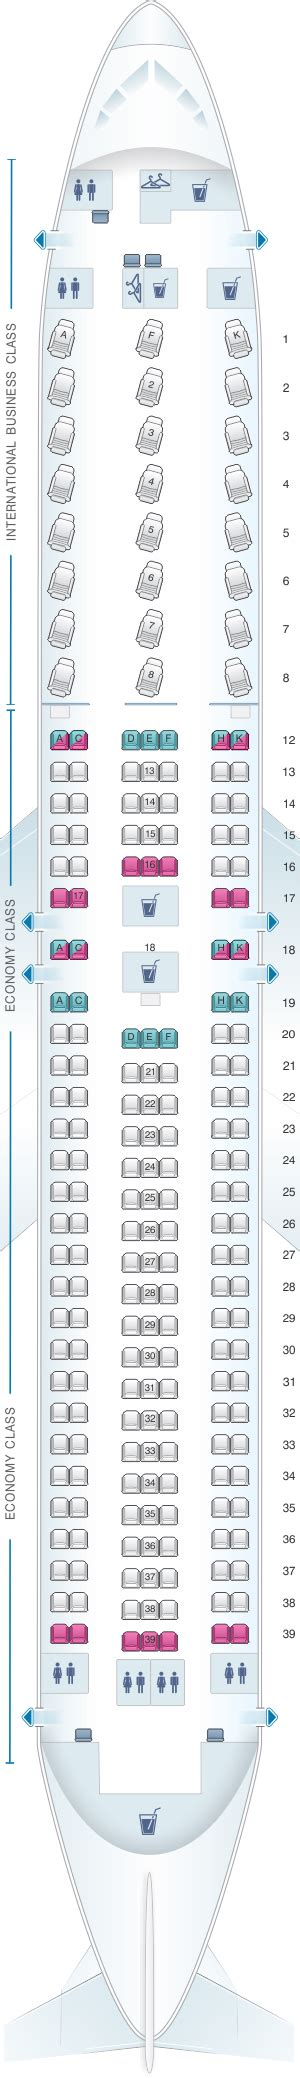 Seat Map Boeing Air Canada by Plan De Cabine Air Canada Boeing B767 300er 763